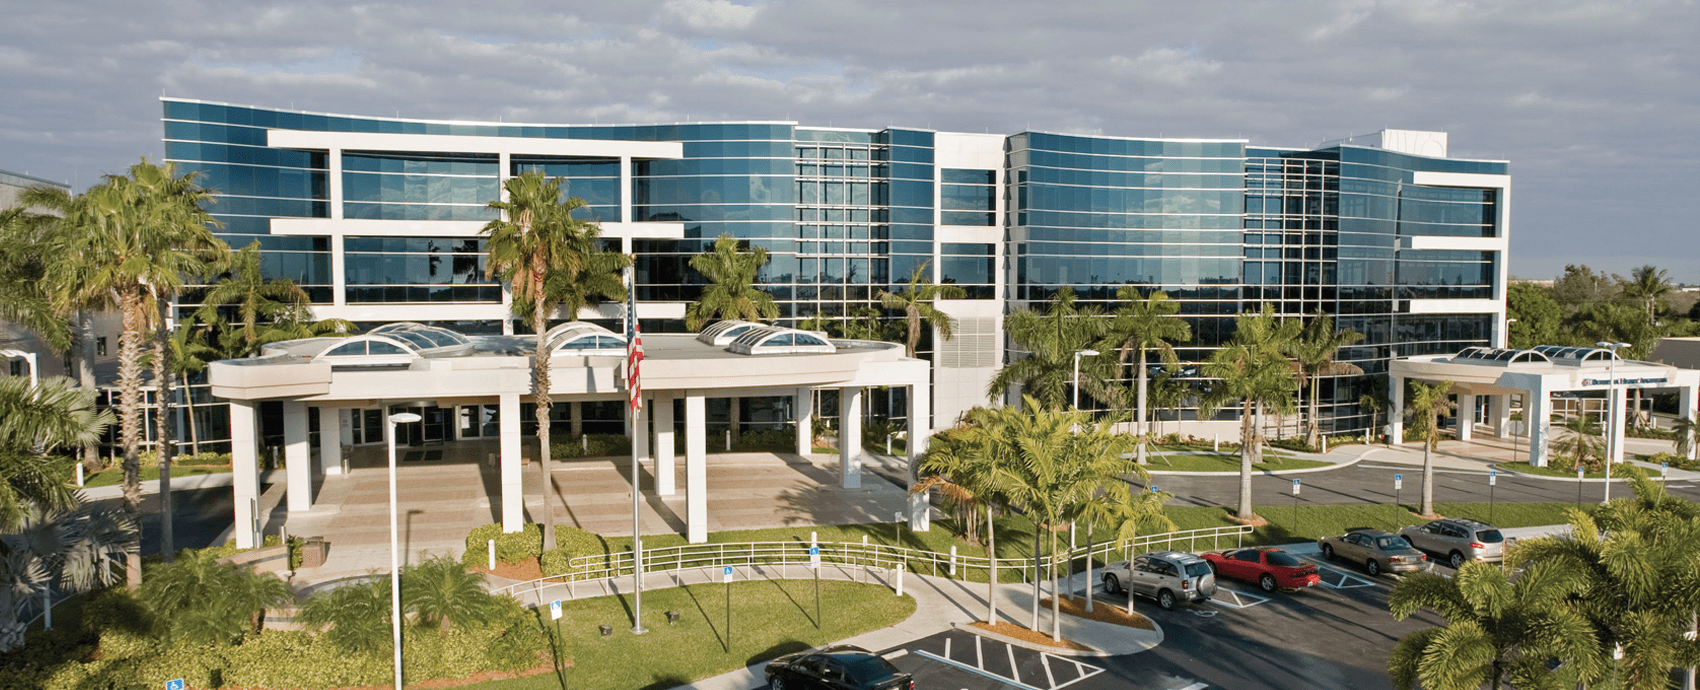 Best Hospitals In Palm Beach County